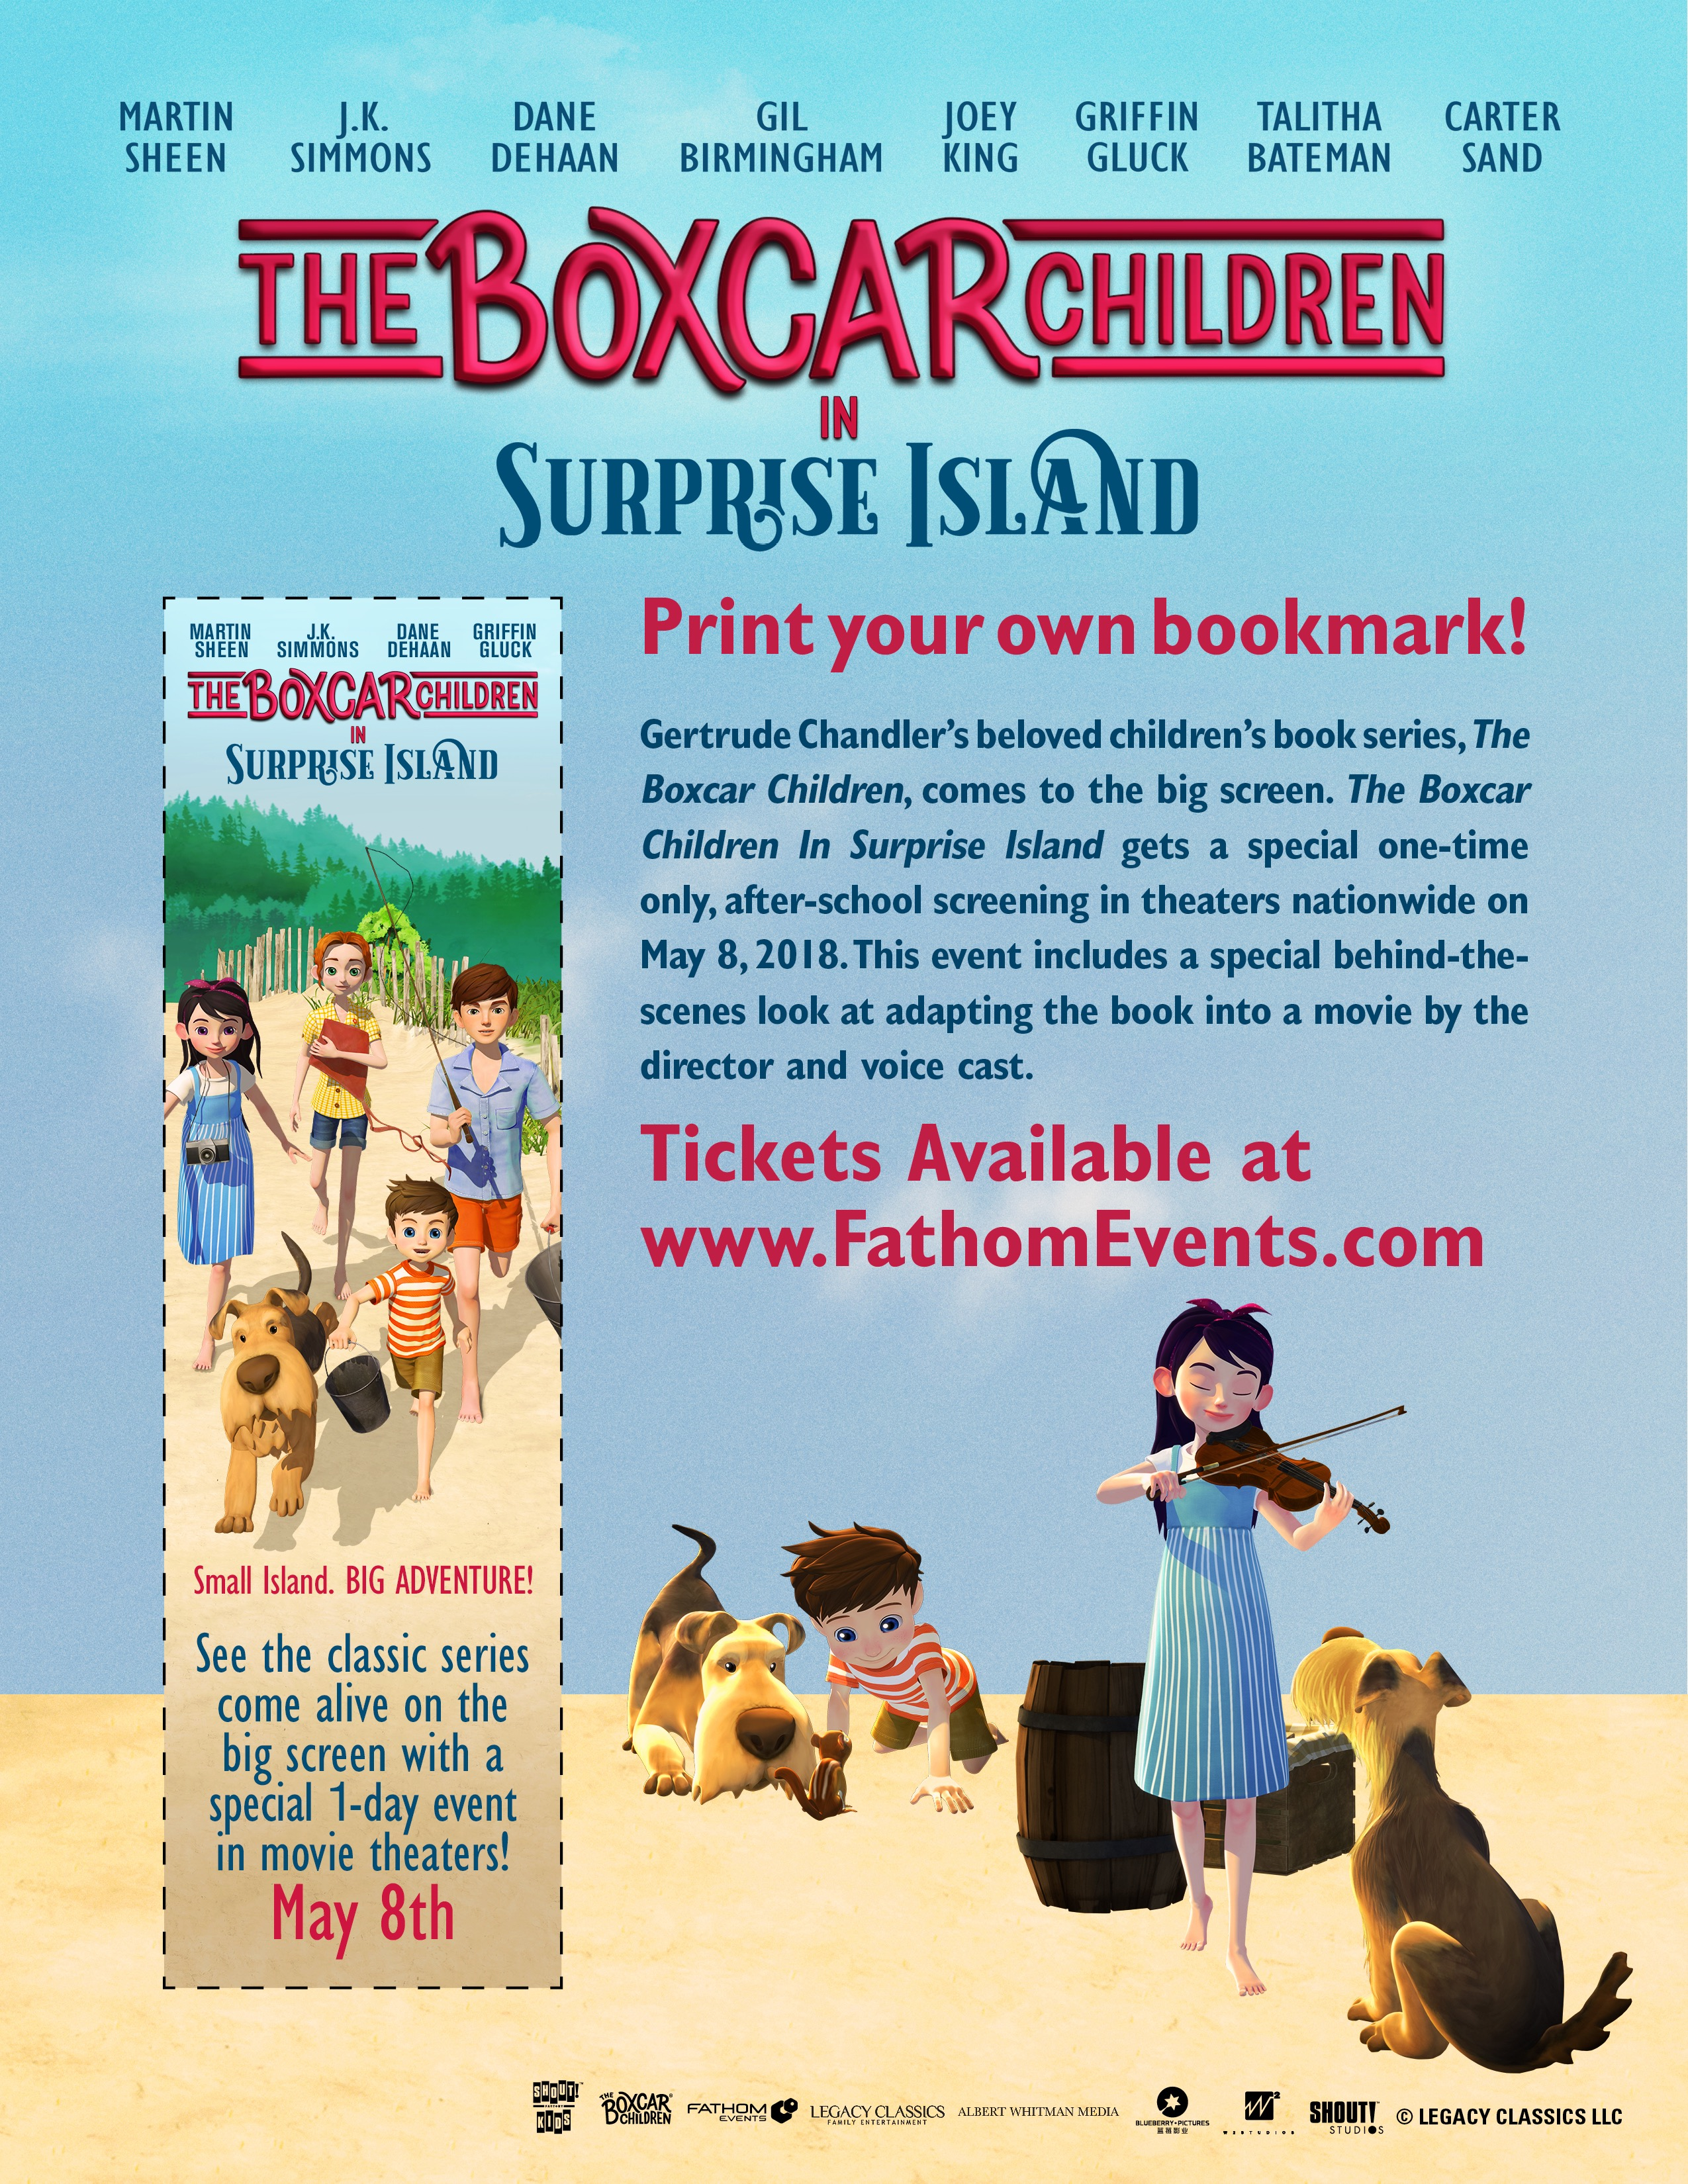 Boxcar Children Books Giveaway